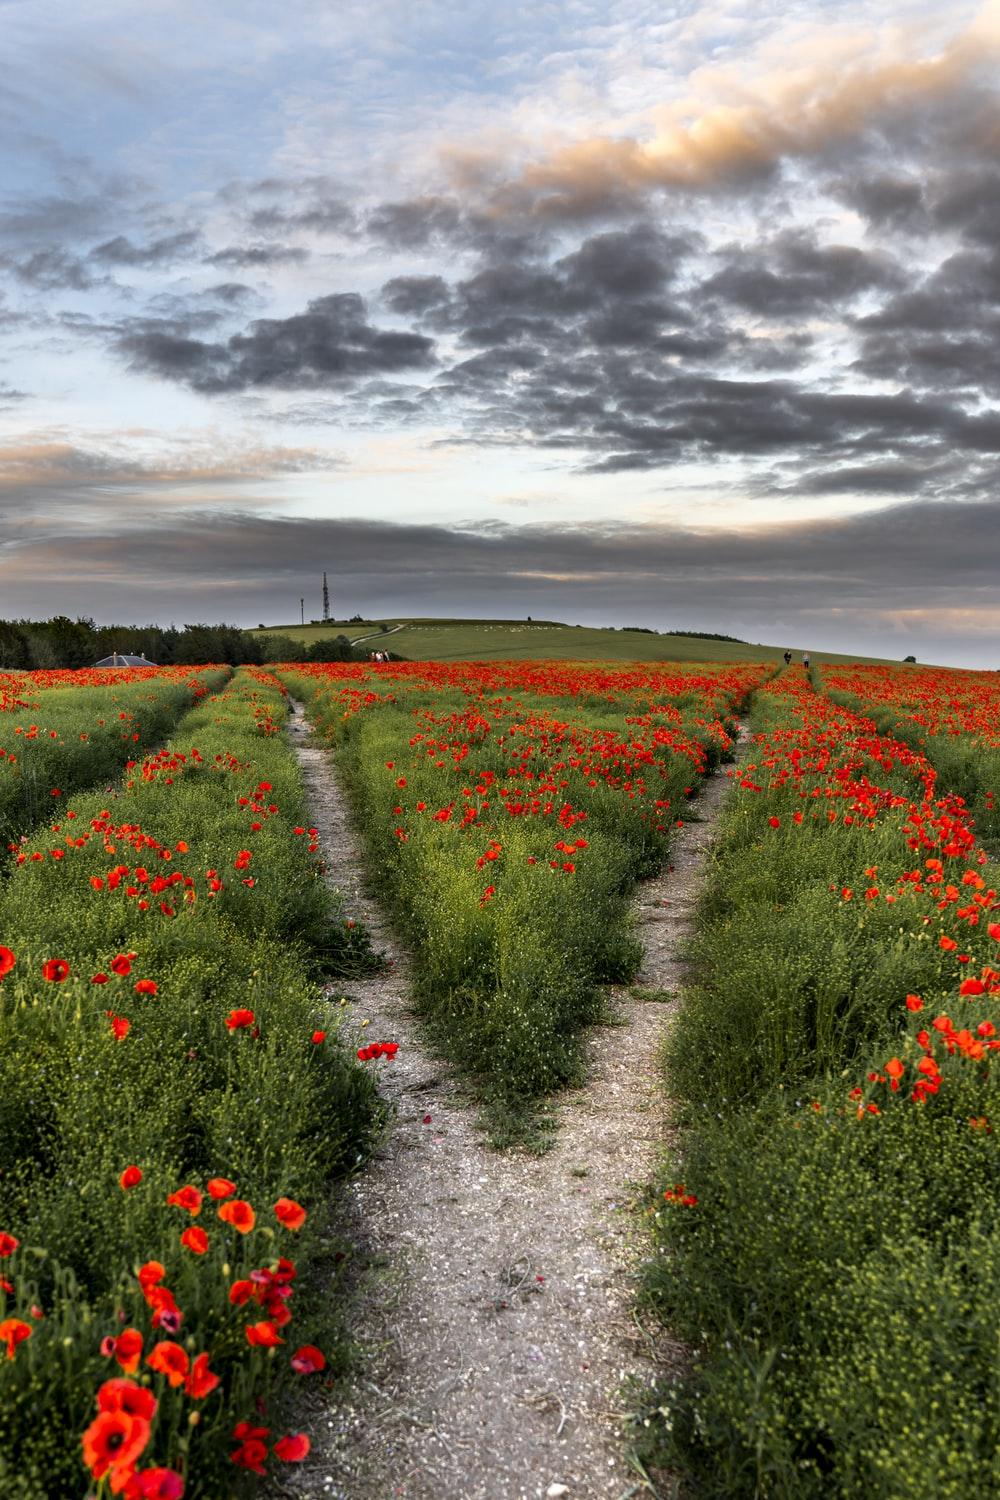 red flower field under gray clouds during daytime